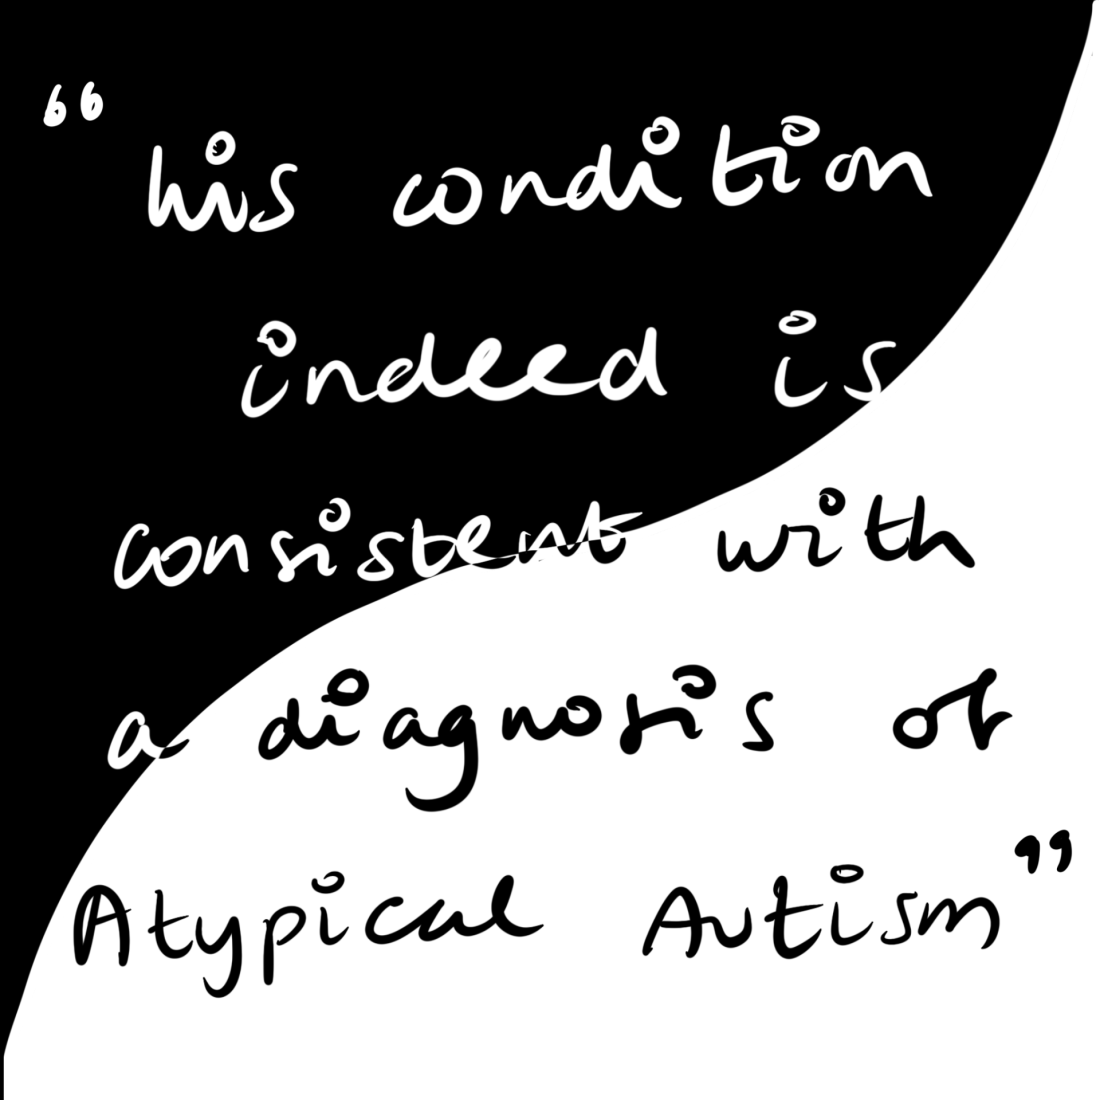 """The quote """"His condition indeed is consistent with a diagnosis of Atypical Autism"""" atop a yin-yang background"""